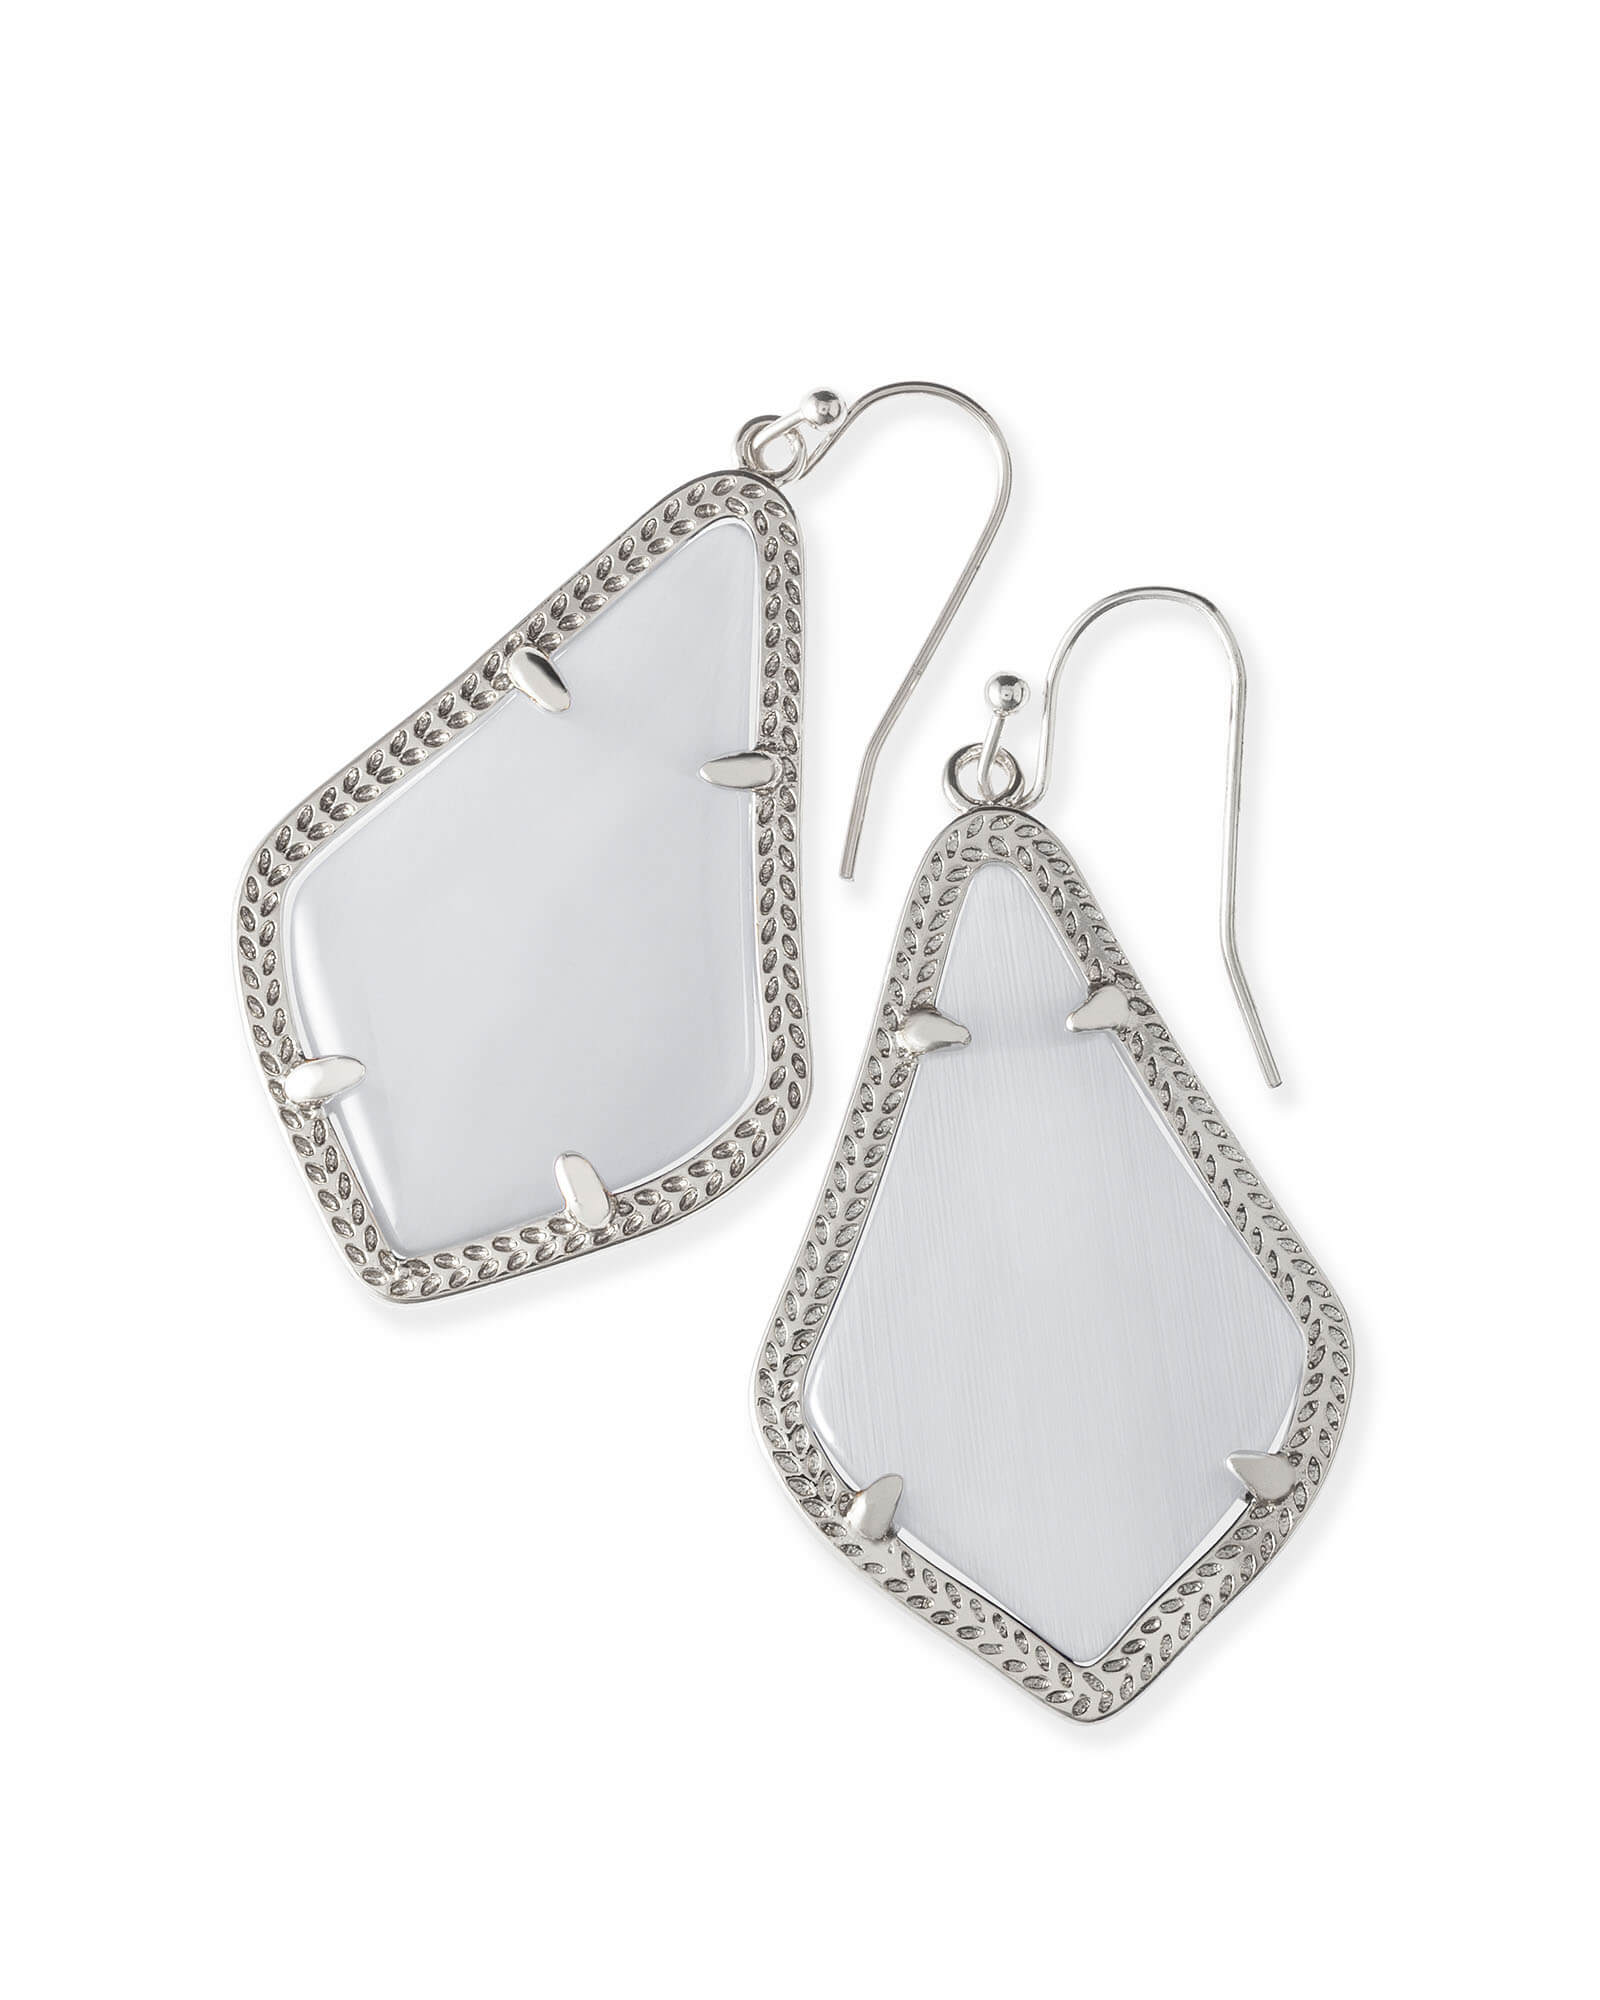 Alex Silver Drop Earrings in Slate Cats Eye